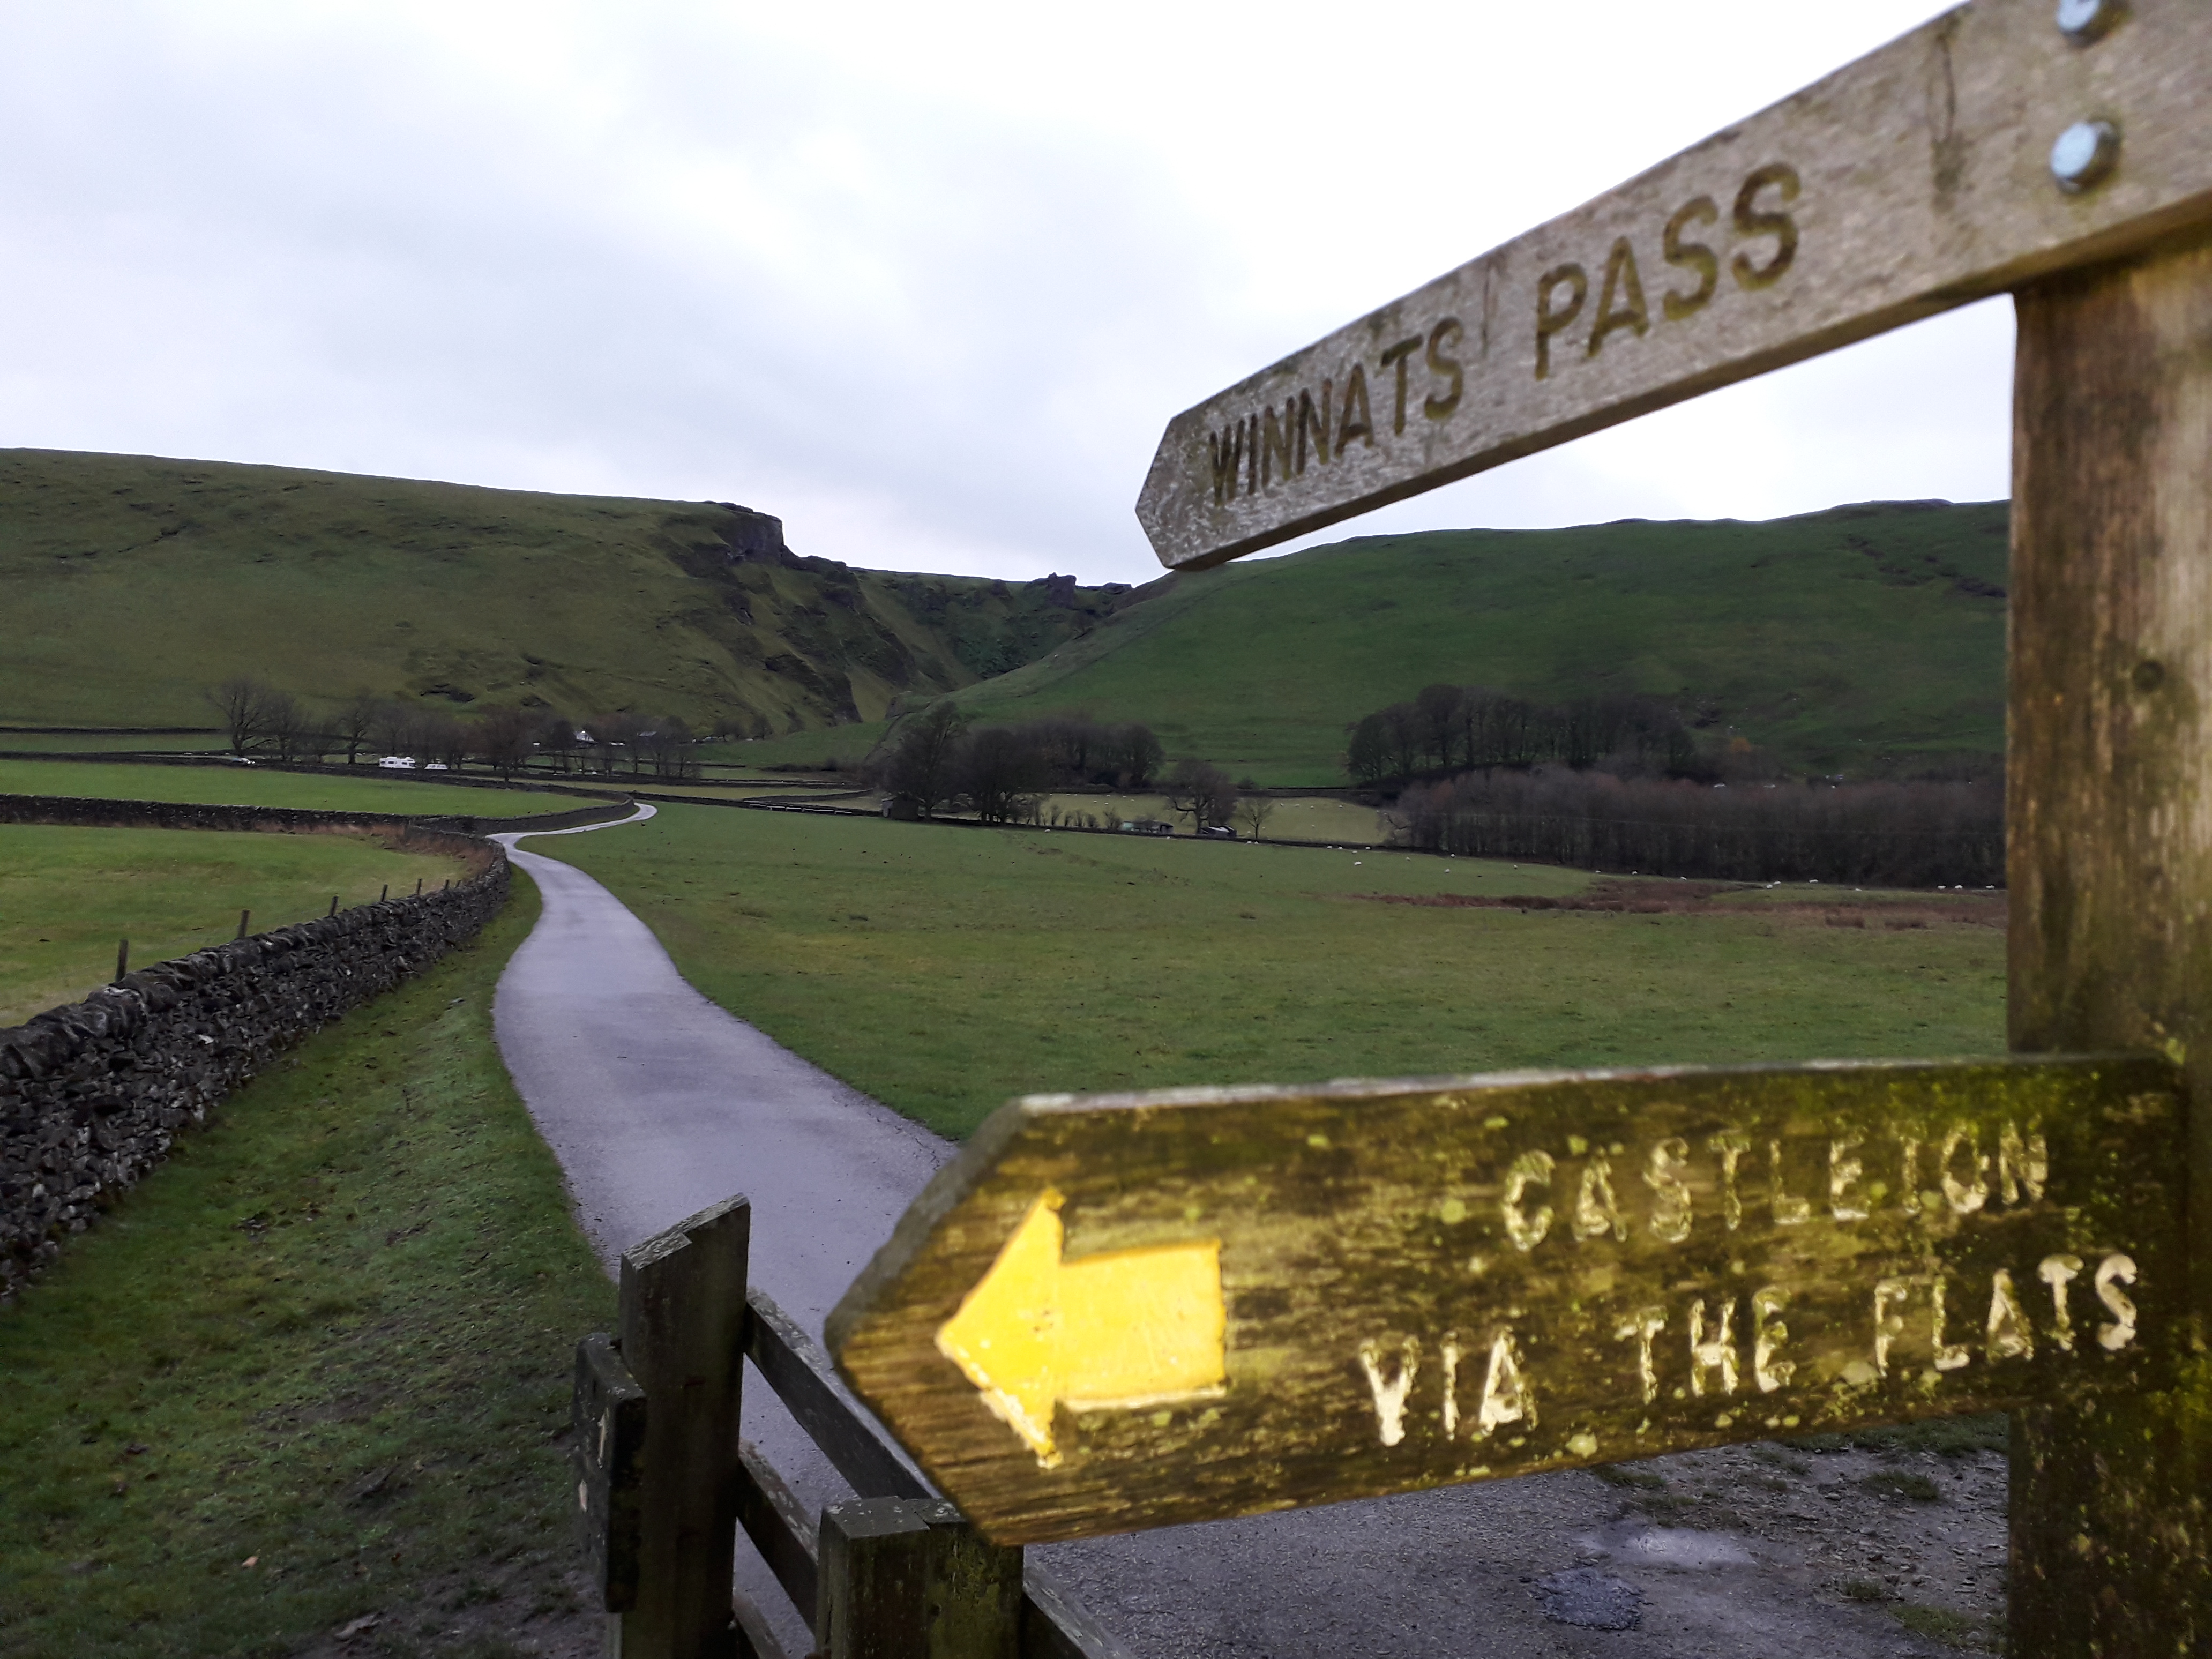 Our Circular Walk via Speedwell Cavern winnats pass